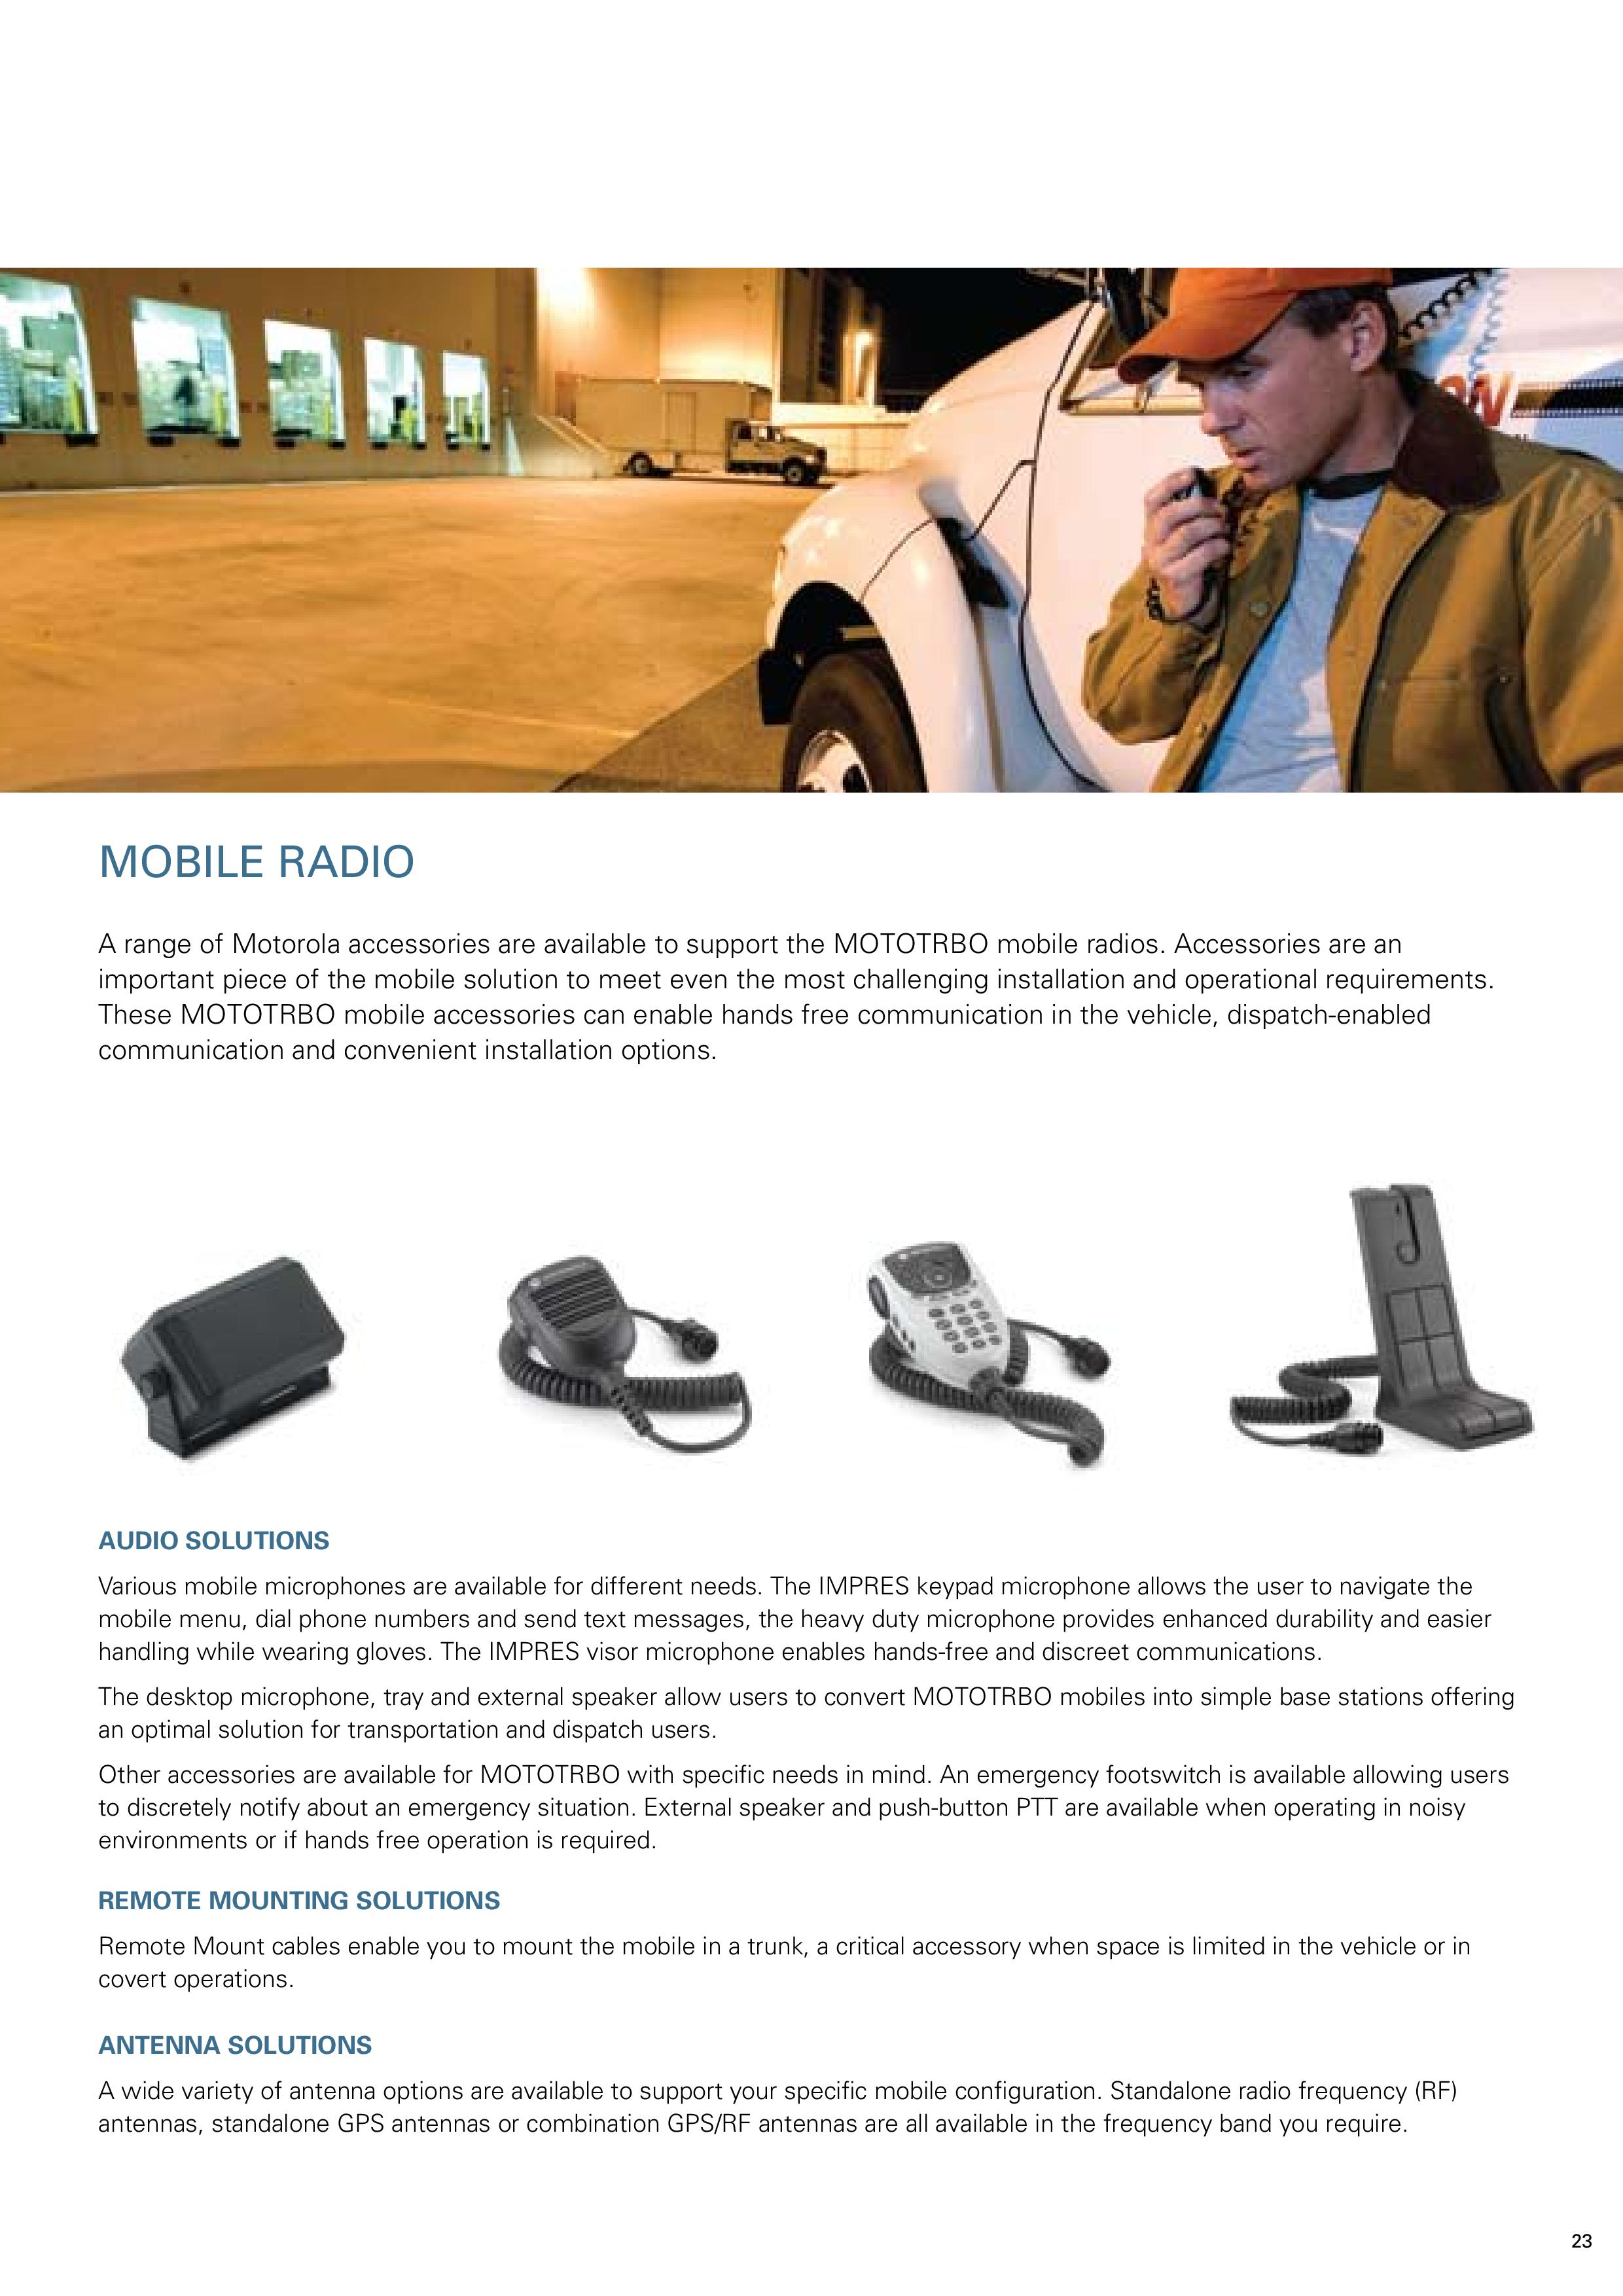 mototrbo_system_brochure_low-page-023